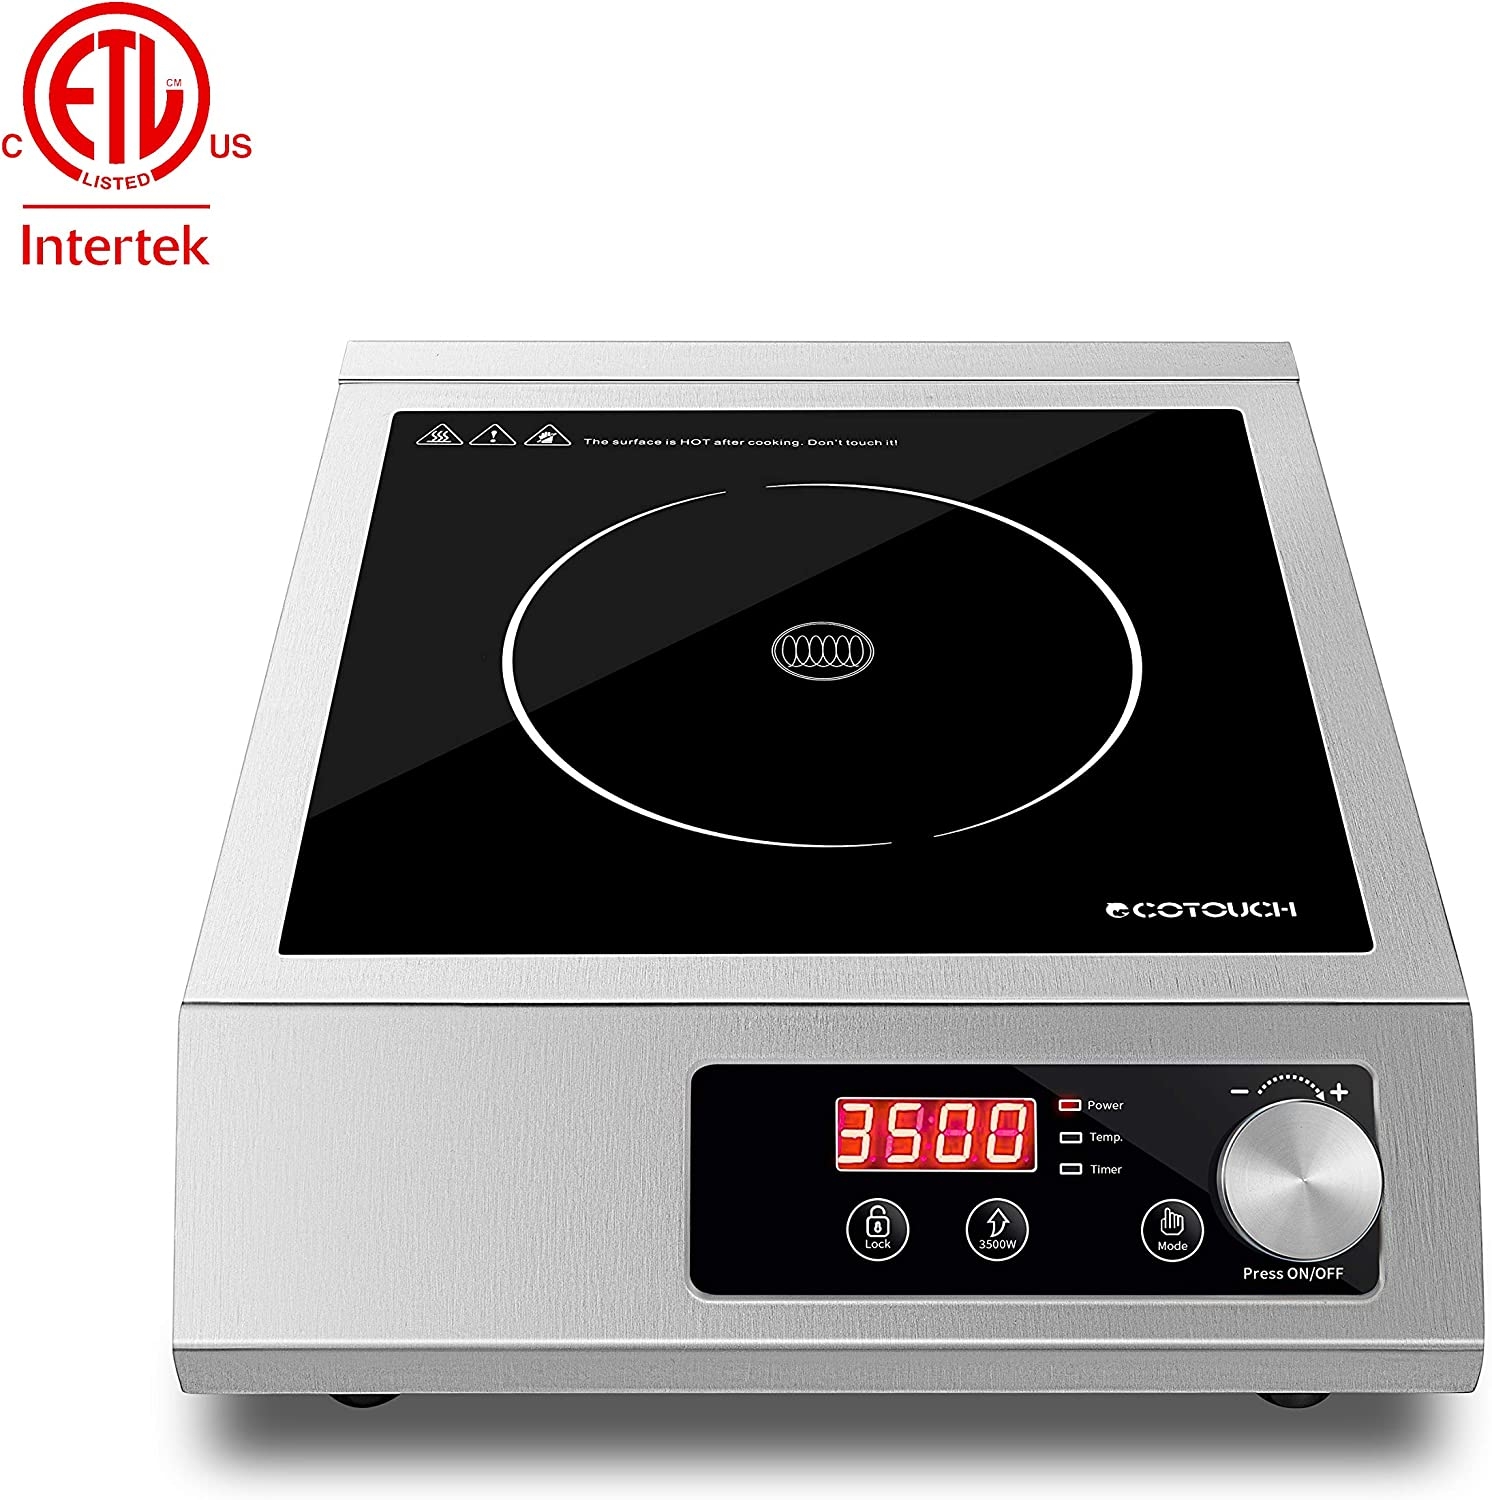 Commercial Induction Cooktop, ECOTOUCH Portable Countertop Burner 3500W Kitchen Electric Range Cooktop Stove Stainless Steel 240V, with Rotary Switch, A80S